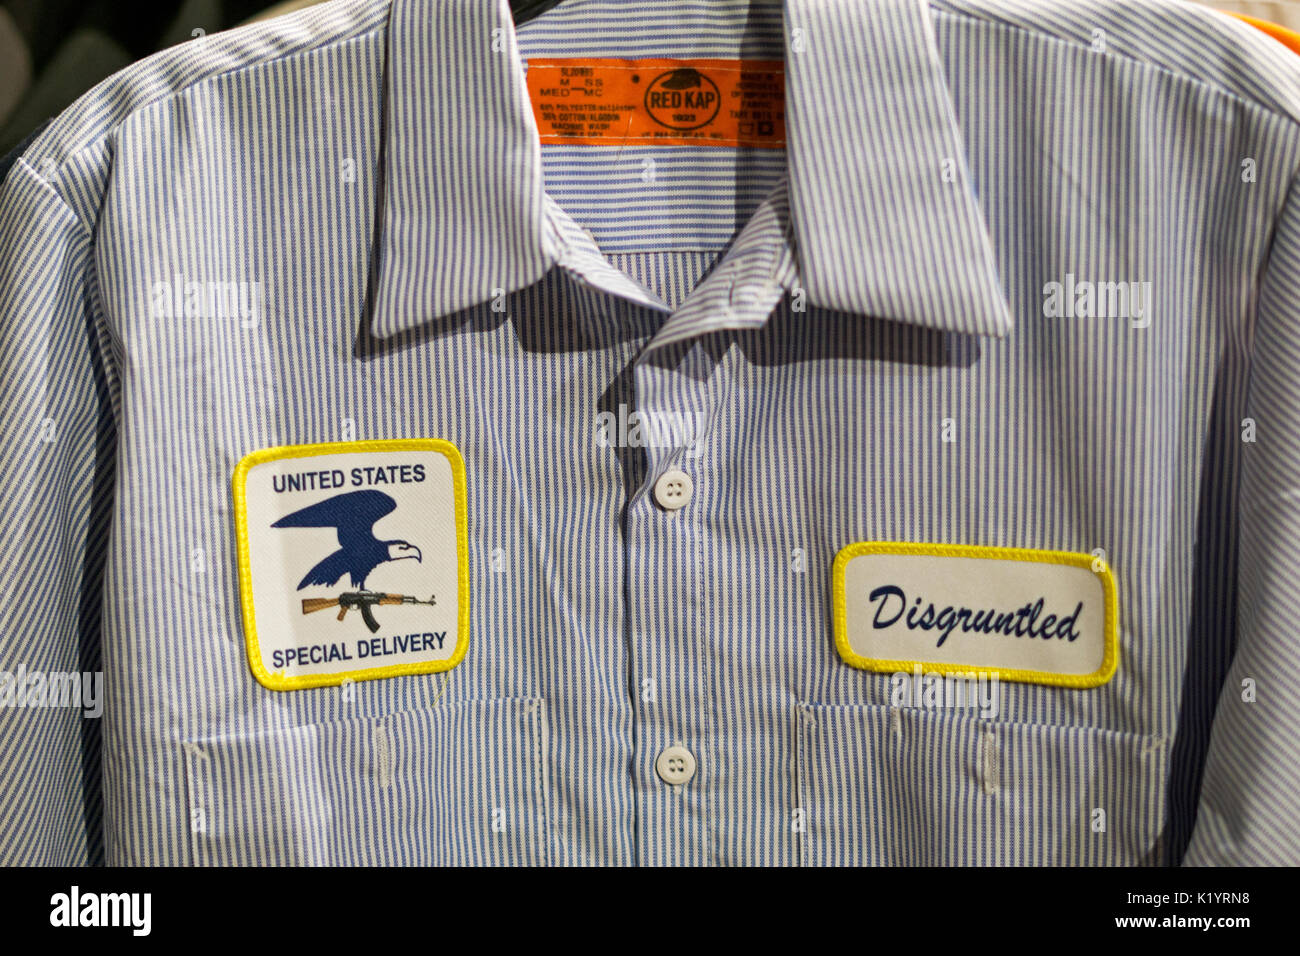 A gag gift of a disgruntled postman's shirt for sale at the Halloween Adventure costume shopin Greenwich Village, New York City - Stock Image